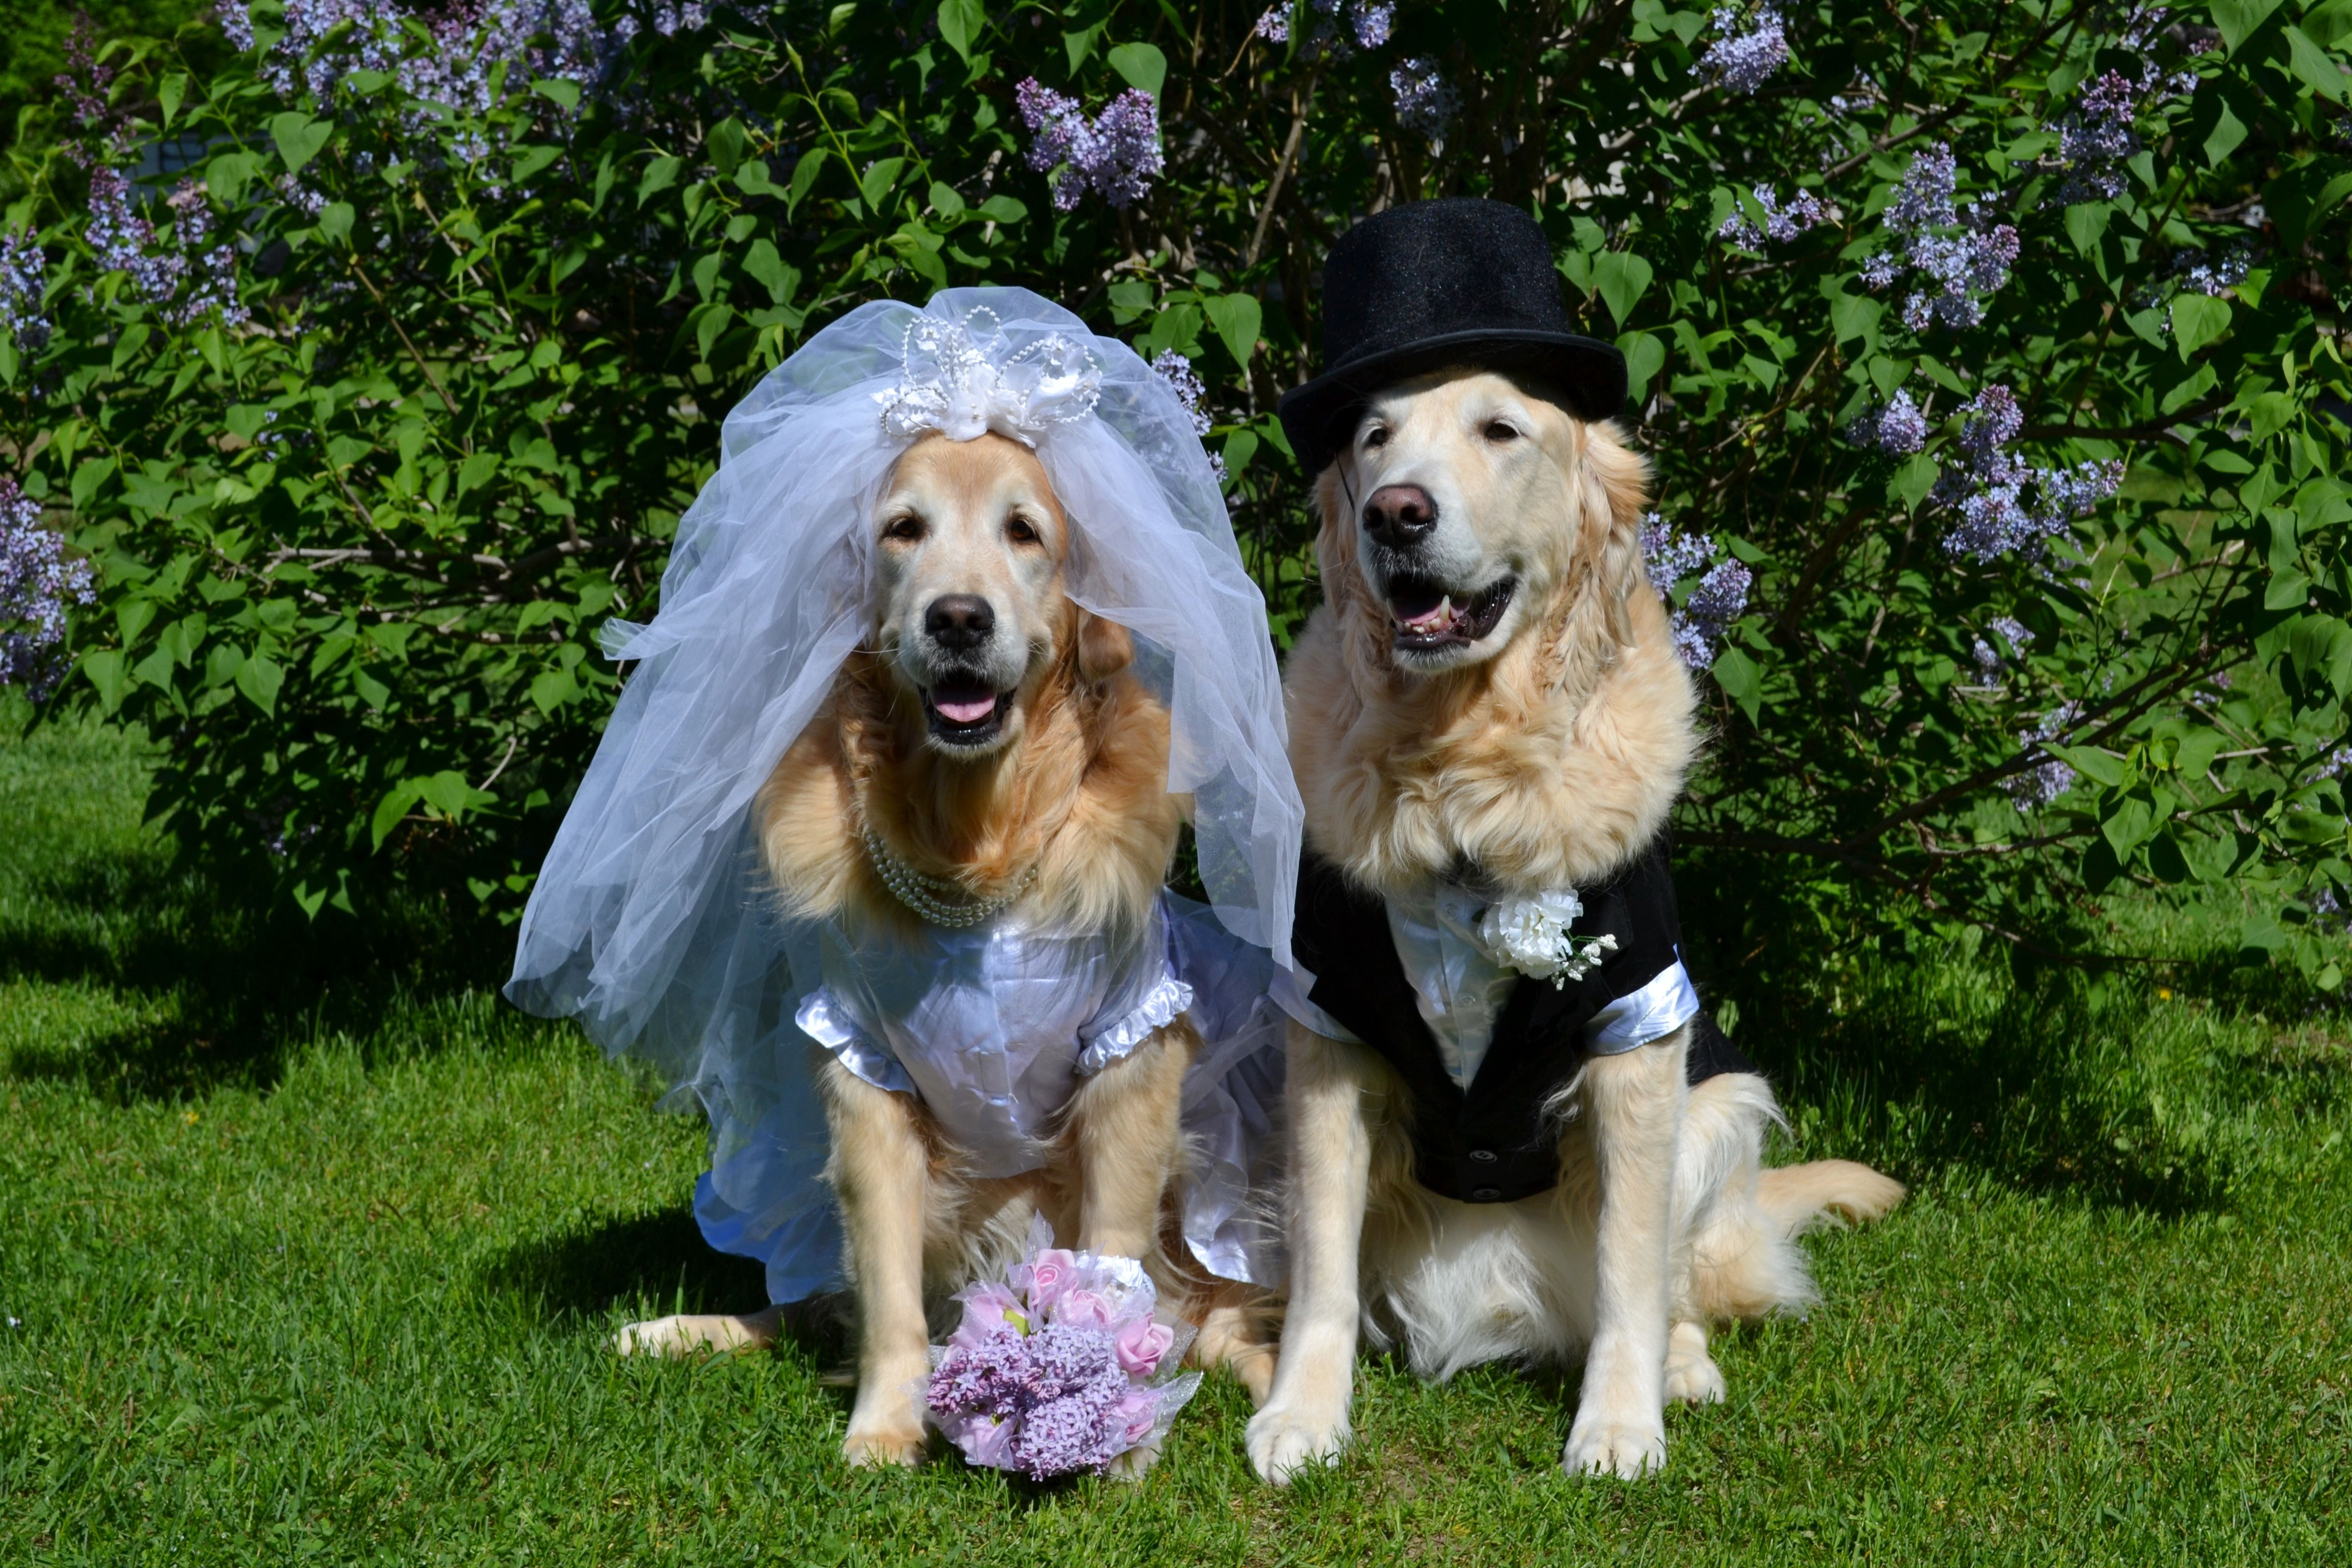 Brie and Ben also posing for a Congratulations on Your Wedding Day note card